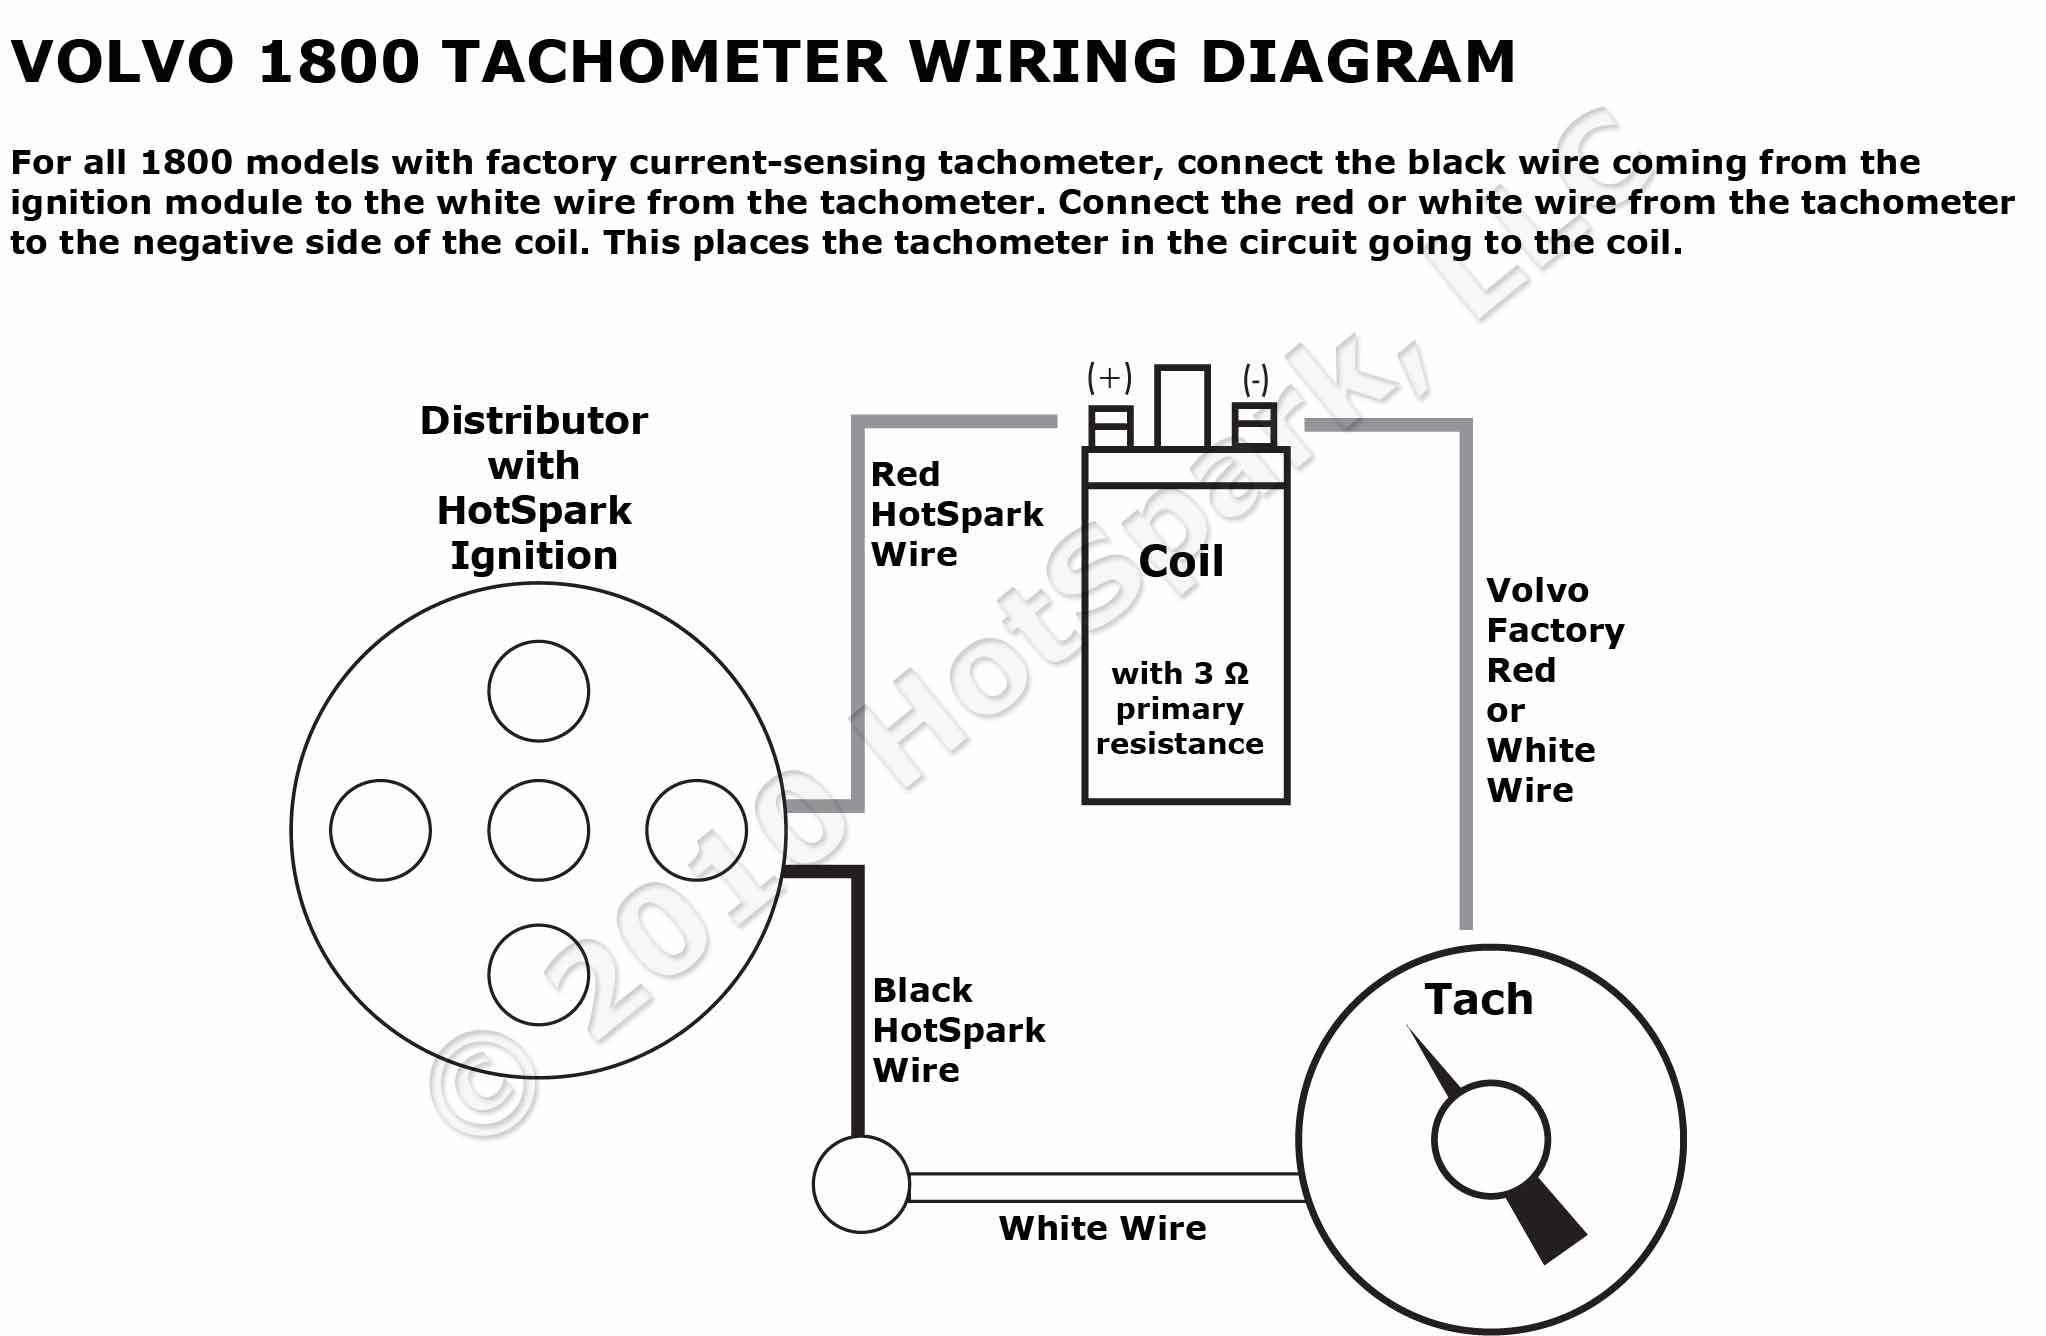 Volvo 1800 Tachometer and Hot Spark Wiring Diagram tach wiring diagram autometer tach wiring diagram \u2022 wiring 5 tachometer wiring diagram at panicattacktreatment.co